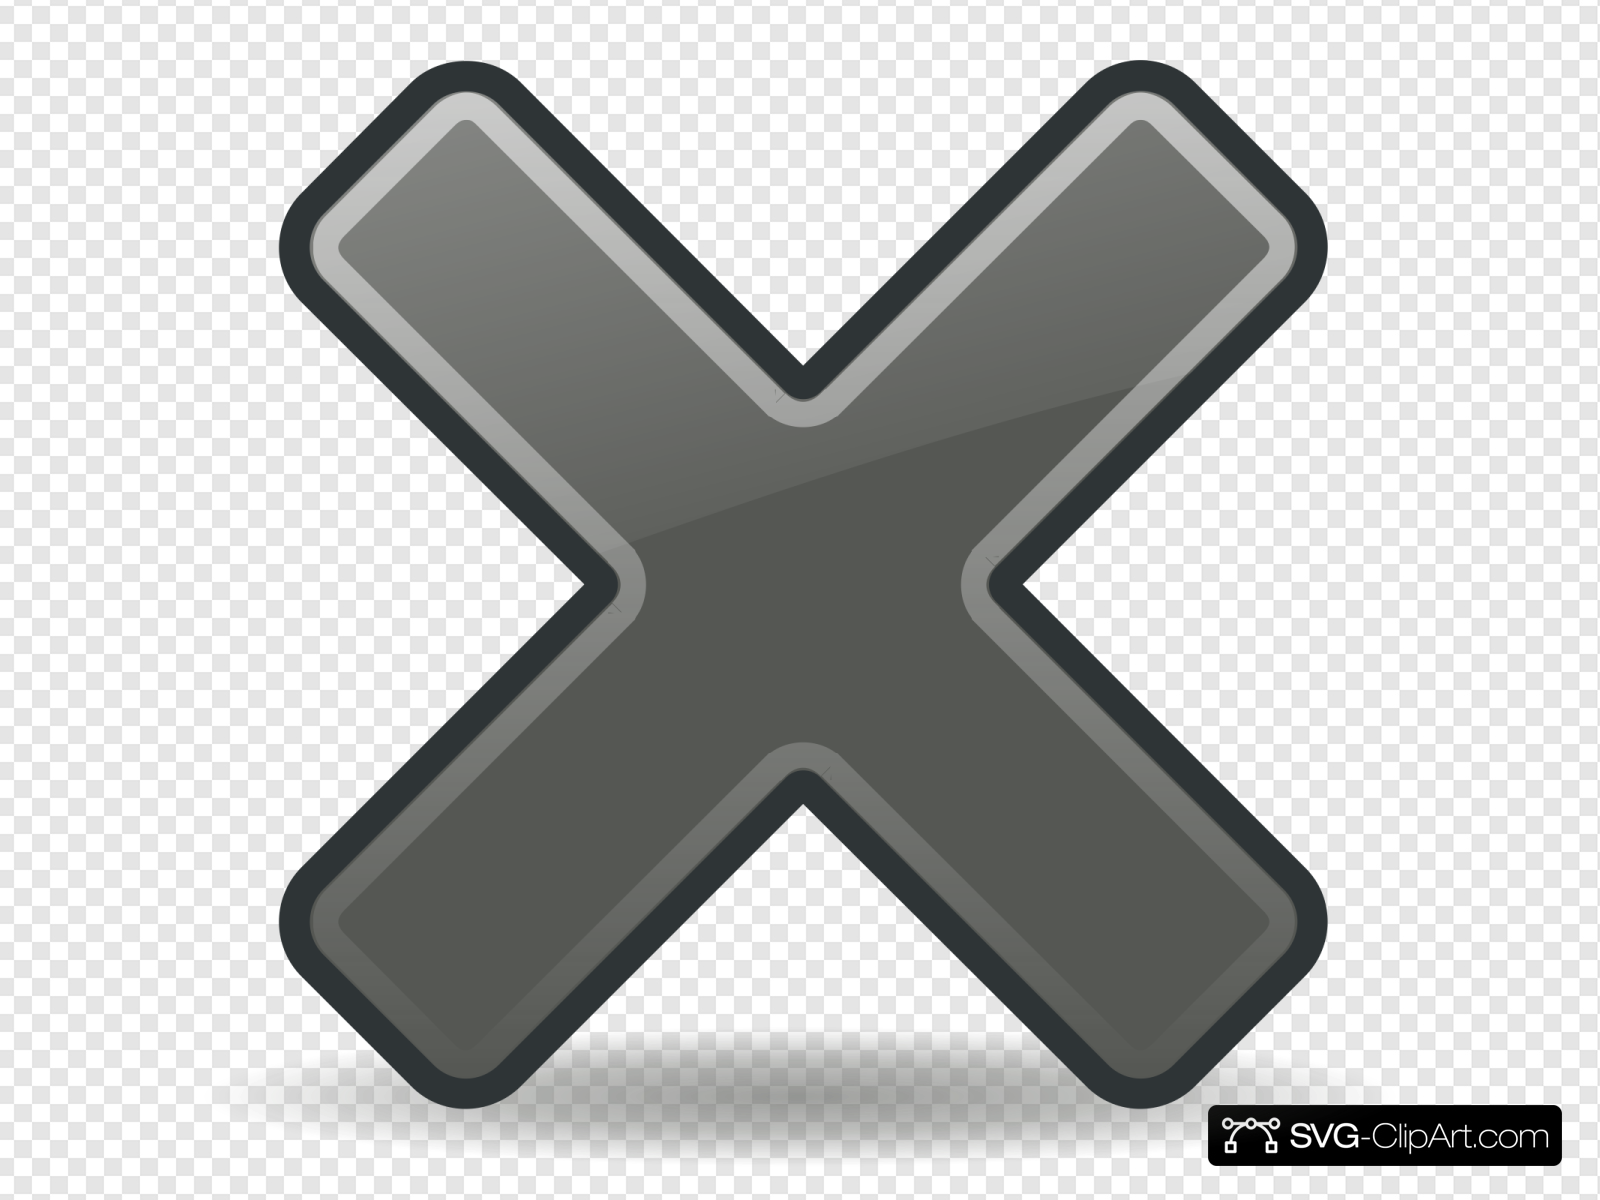 Application Exit Clip art, Icon and SVG.